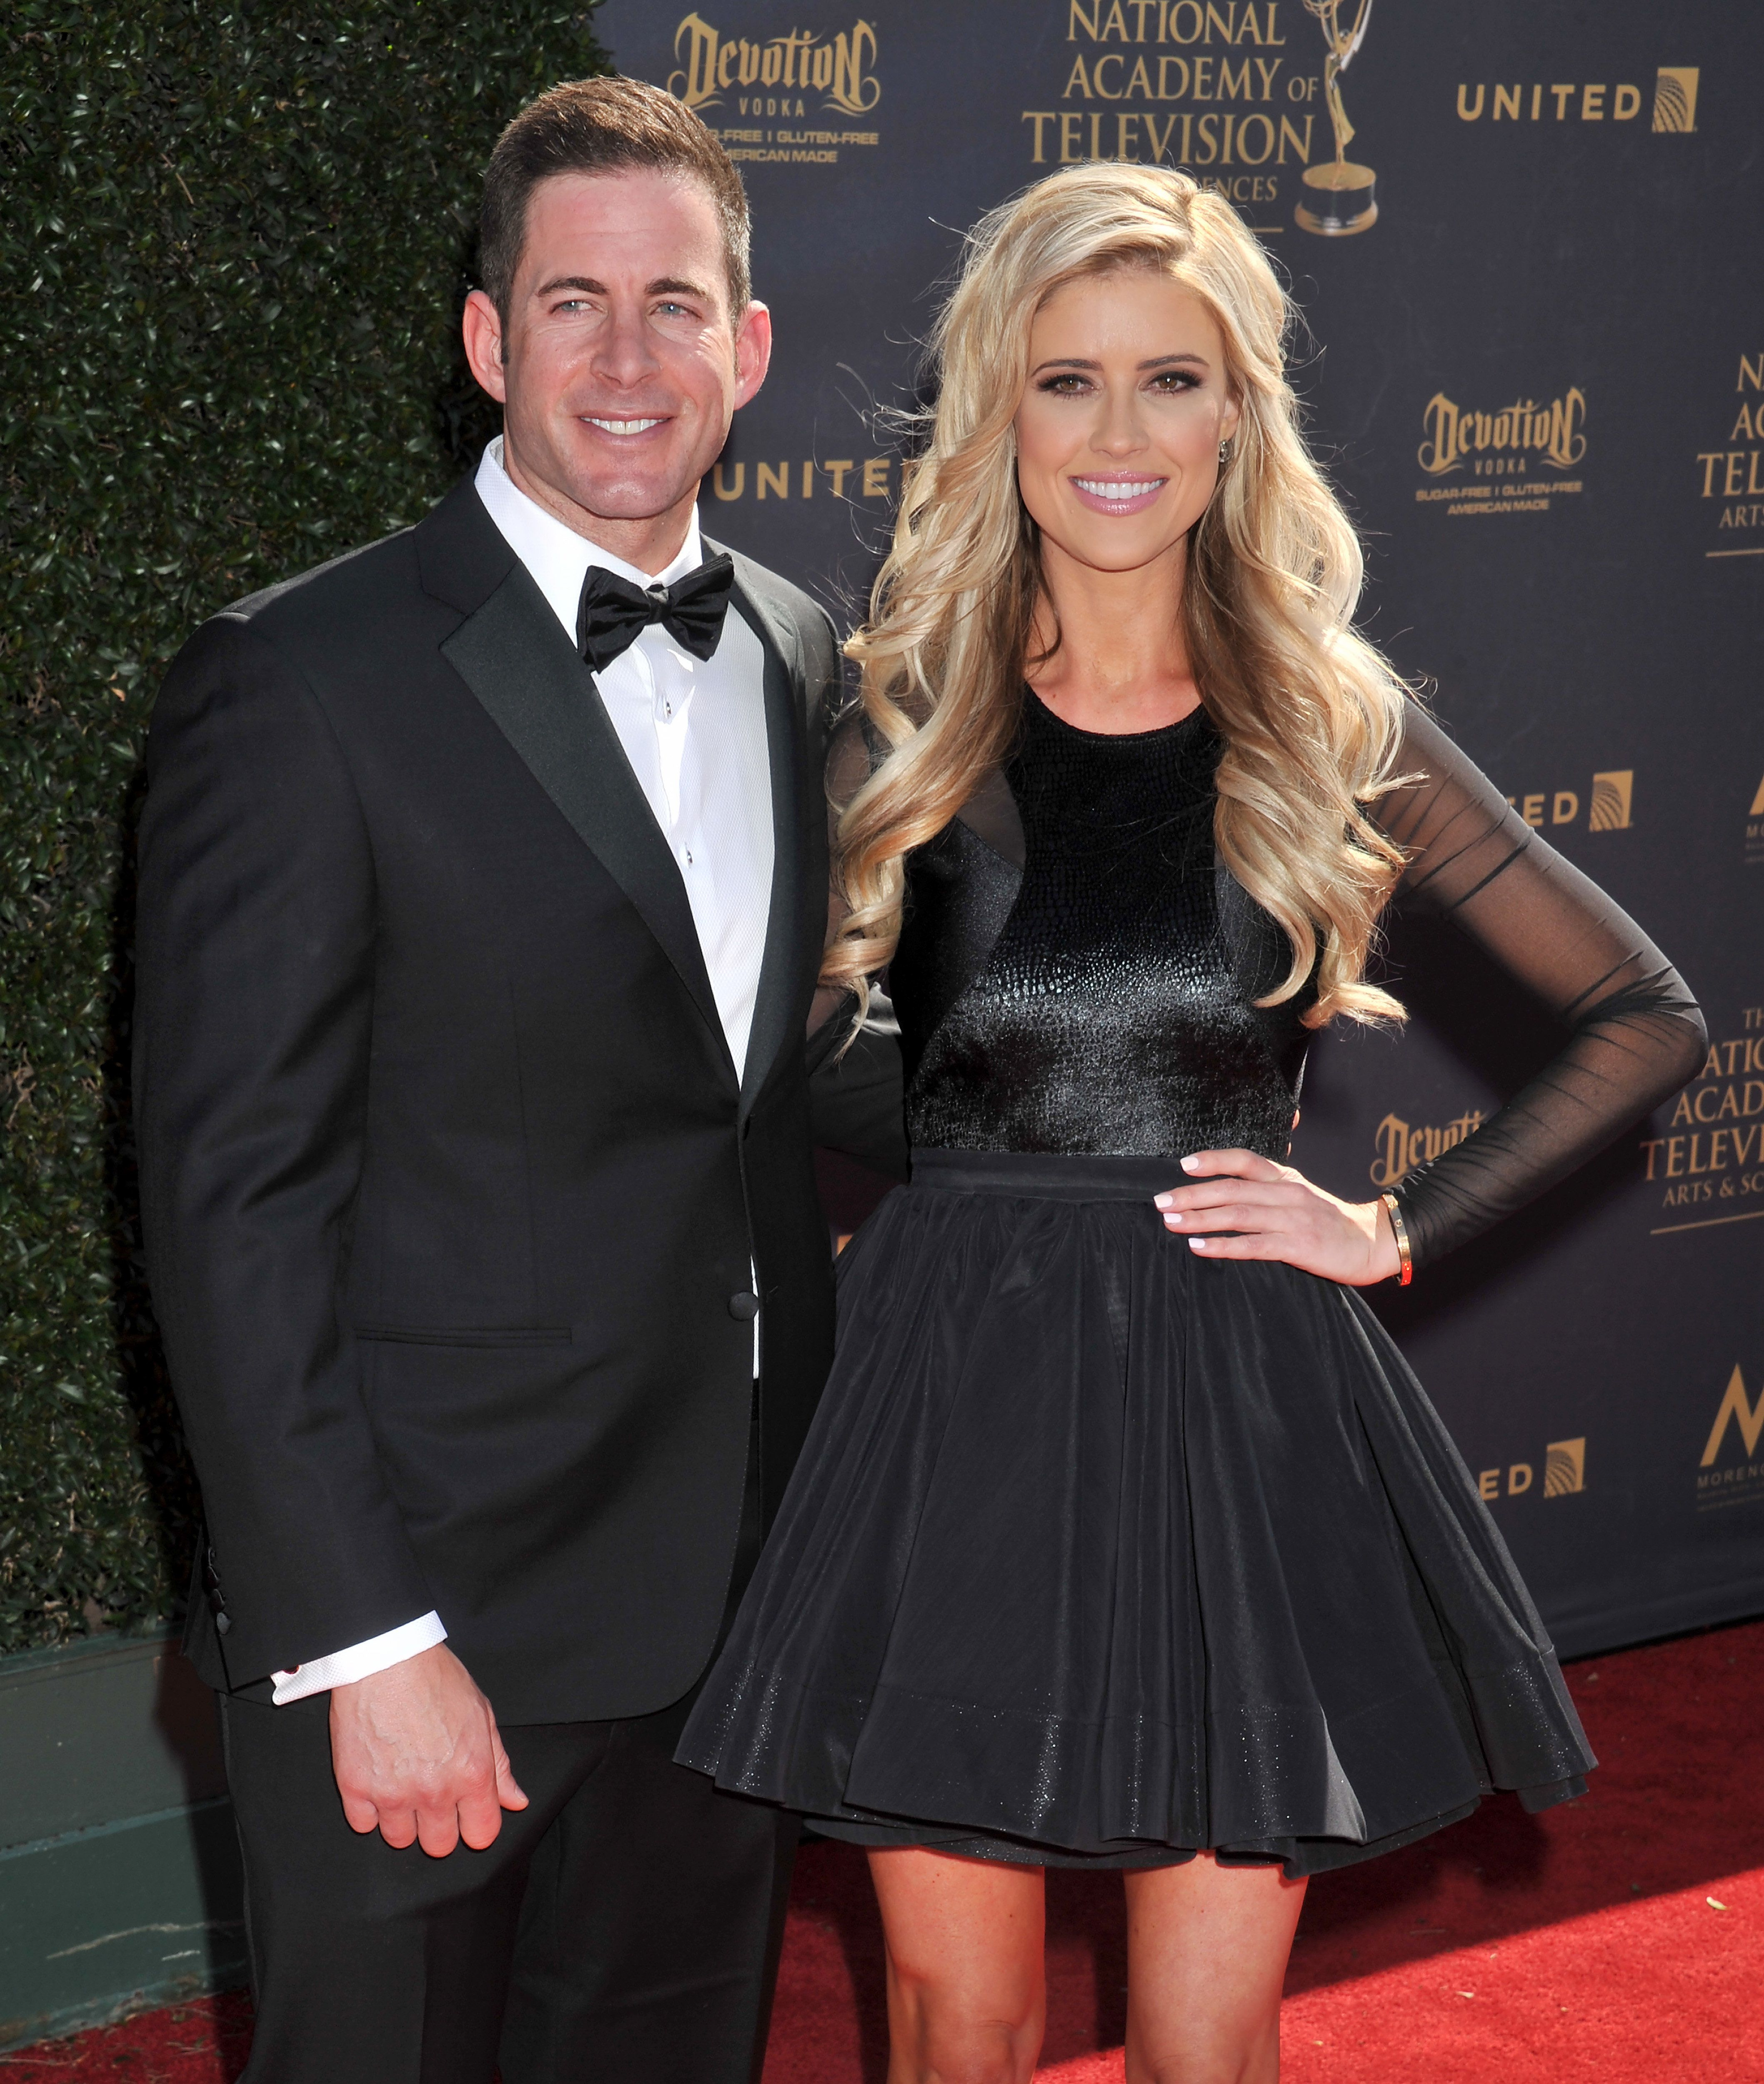 PASADENA, CA - APRIL 30:  Christina El Moussa and Tarek El Moussa arrive at the 44th Annual Daytime Emmy Awards at Pasadena Civic Auditorium on April 30, 2017 in Pasadena, California.  (Photo by Gregg DeGuire/WireImage)